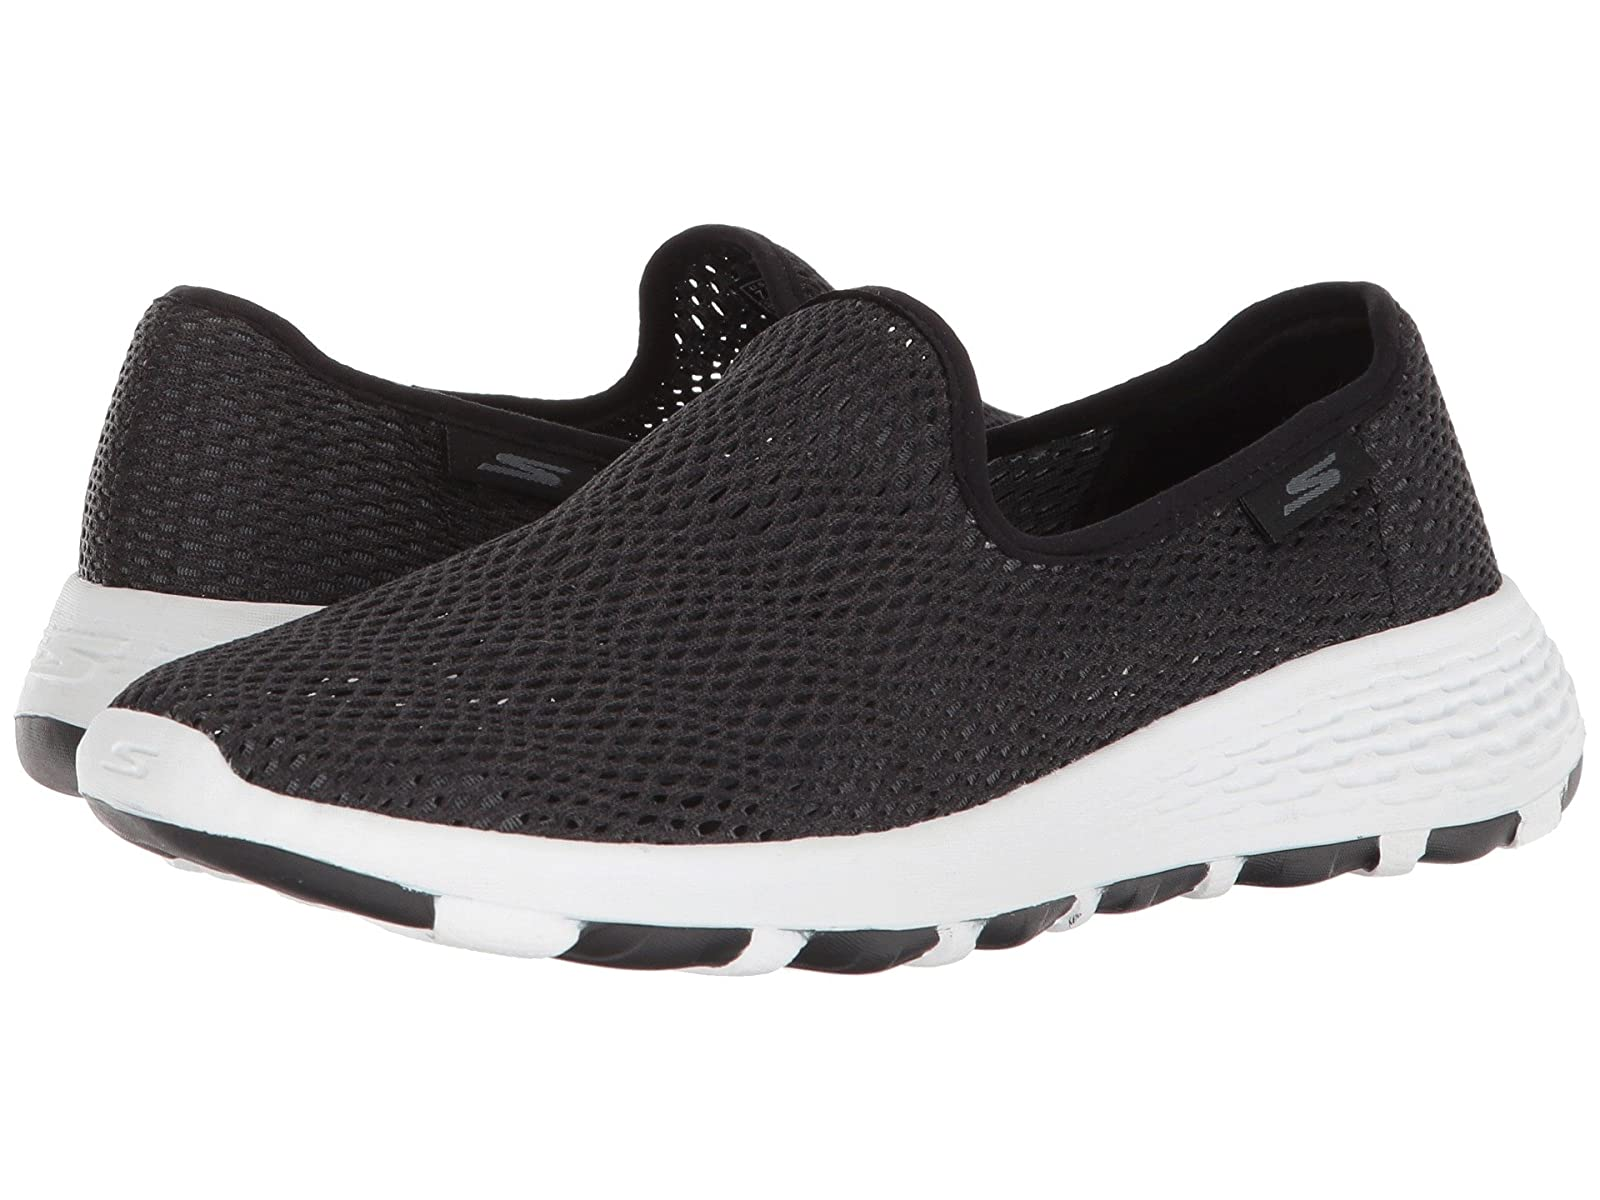 SKECHERS Performance Go Walk CoolAtmospheric grades have affordable shoes